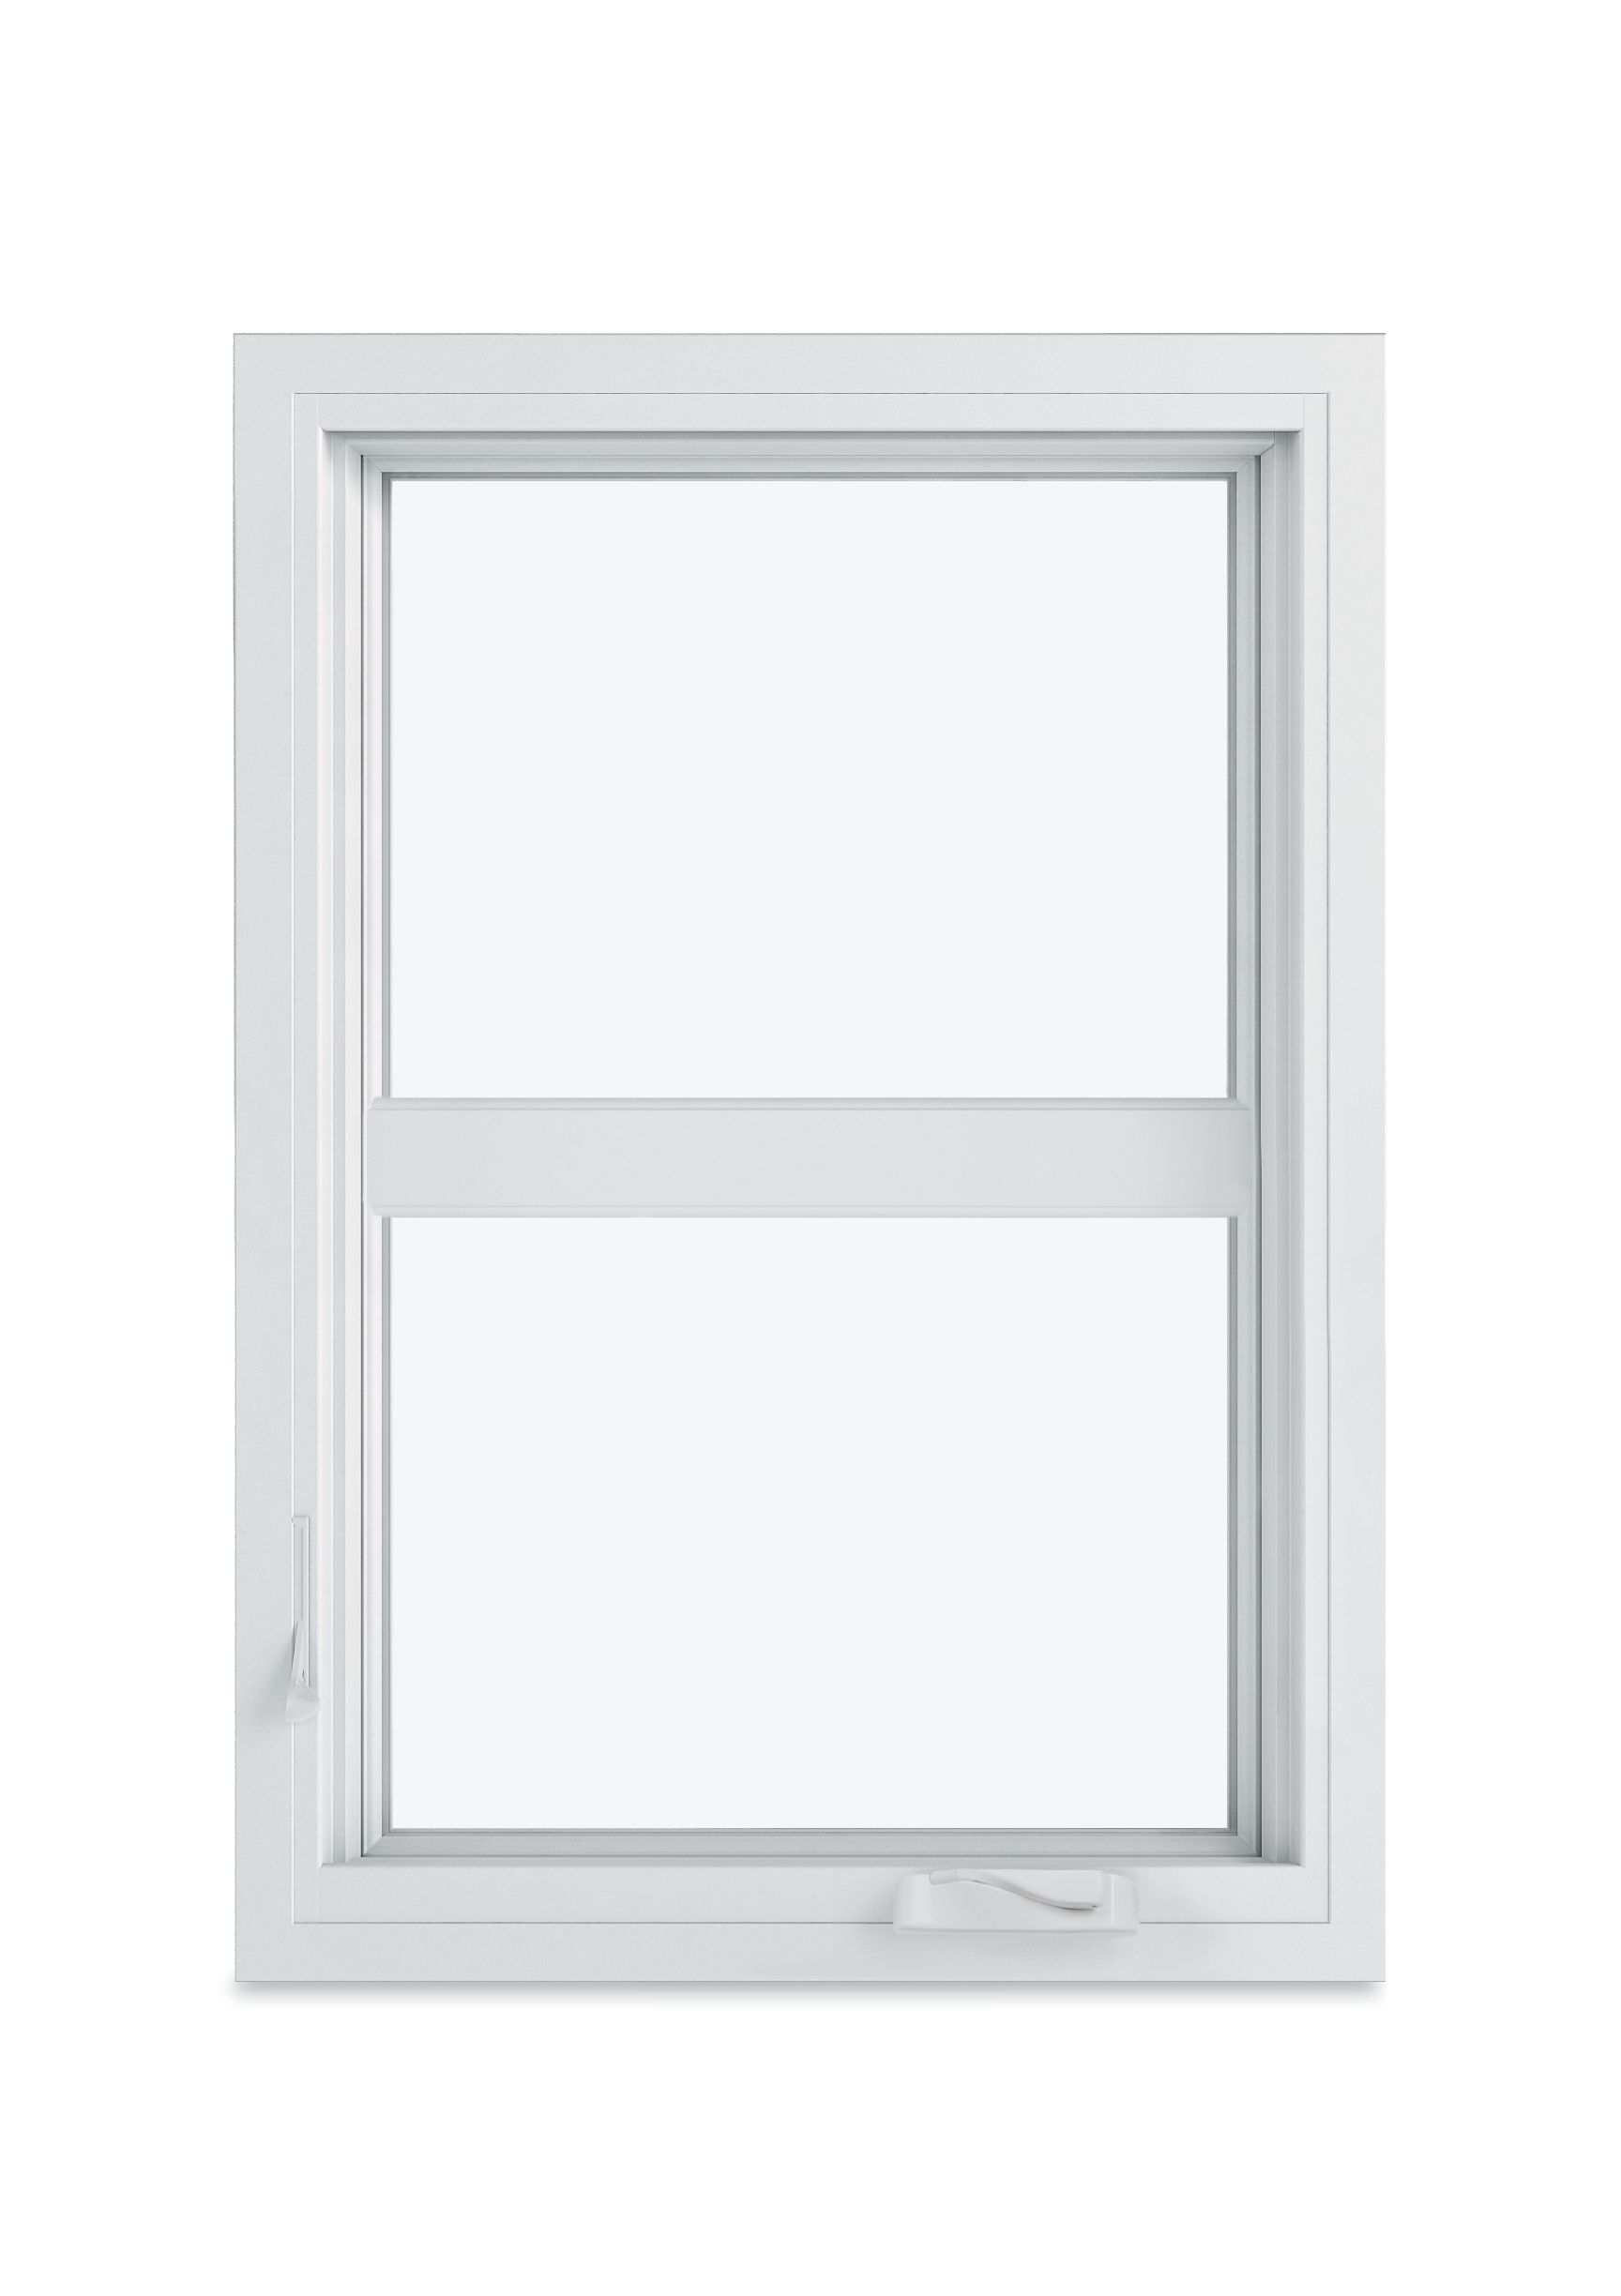 Infinity Casement Window Design Casement Windows Casement